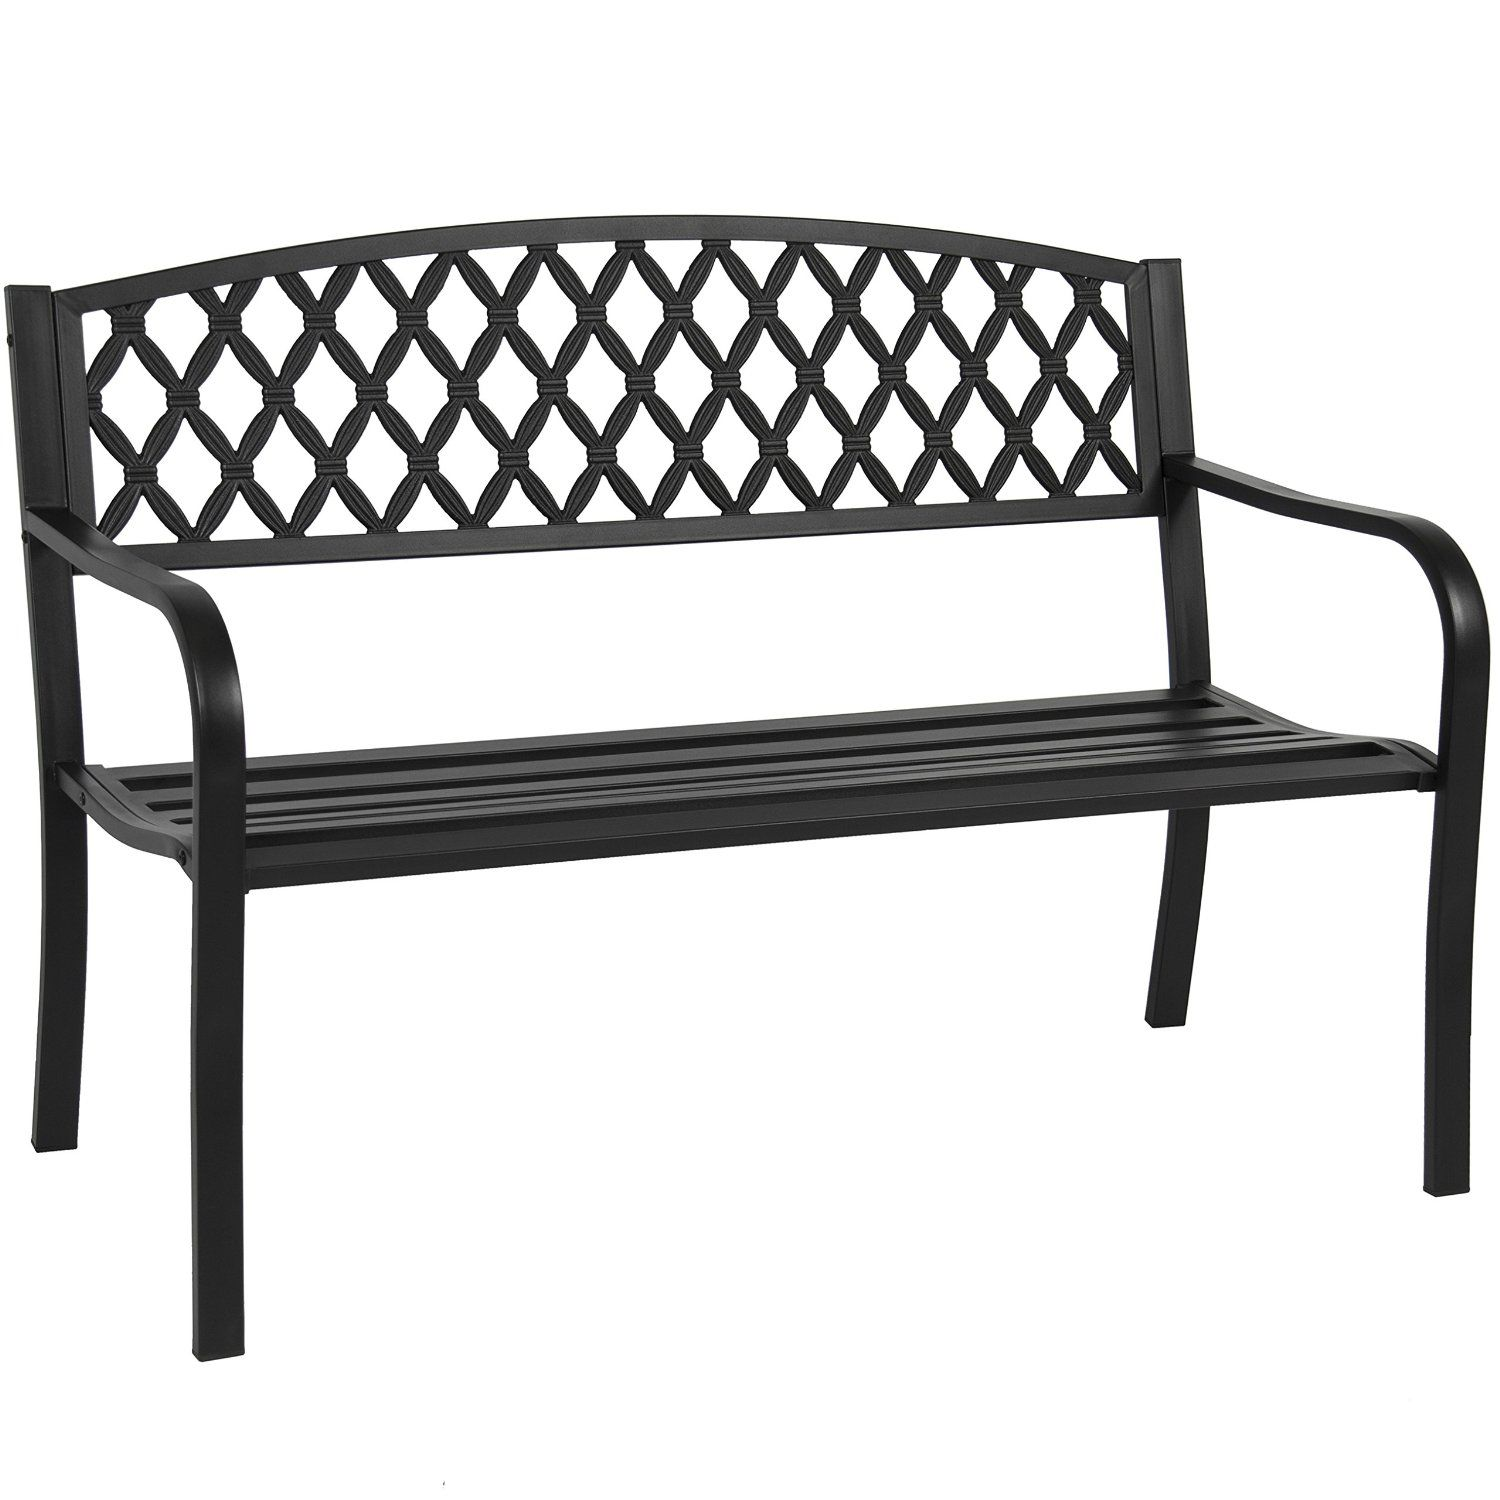 "Amazon Best Choice Products 50"" Patio Garden Bench Park Yard"